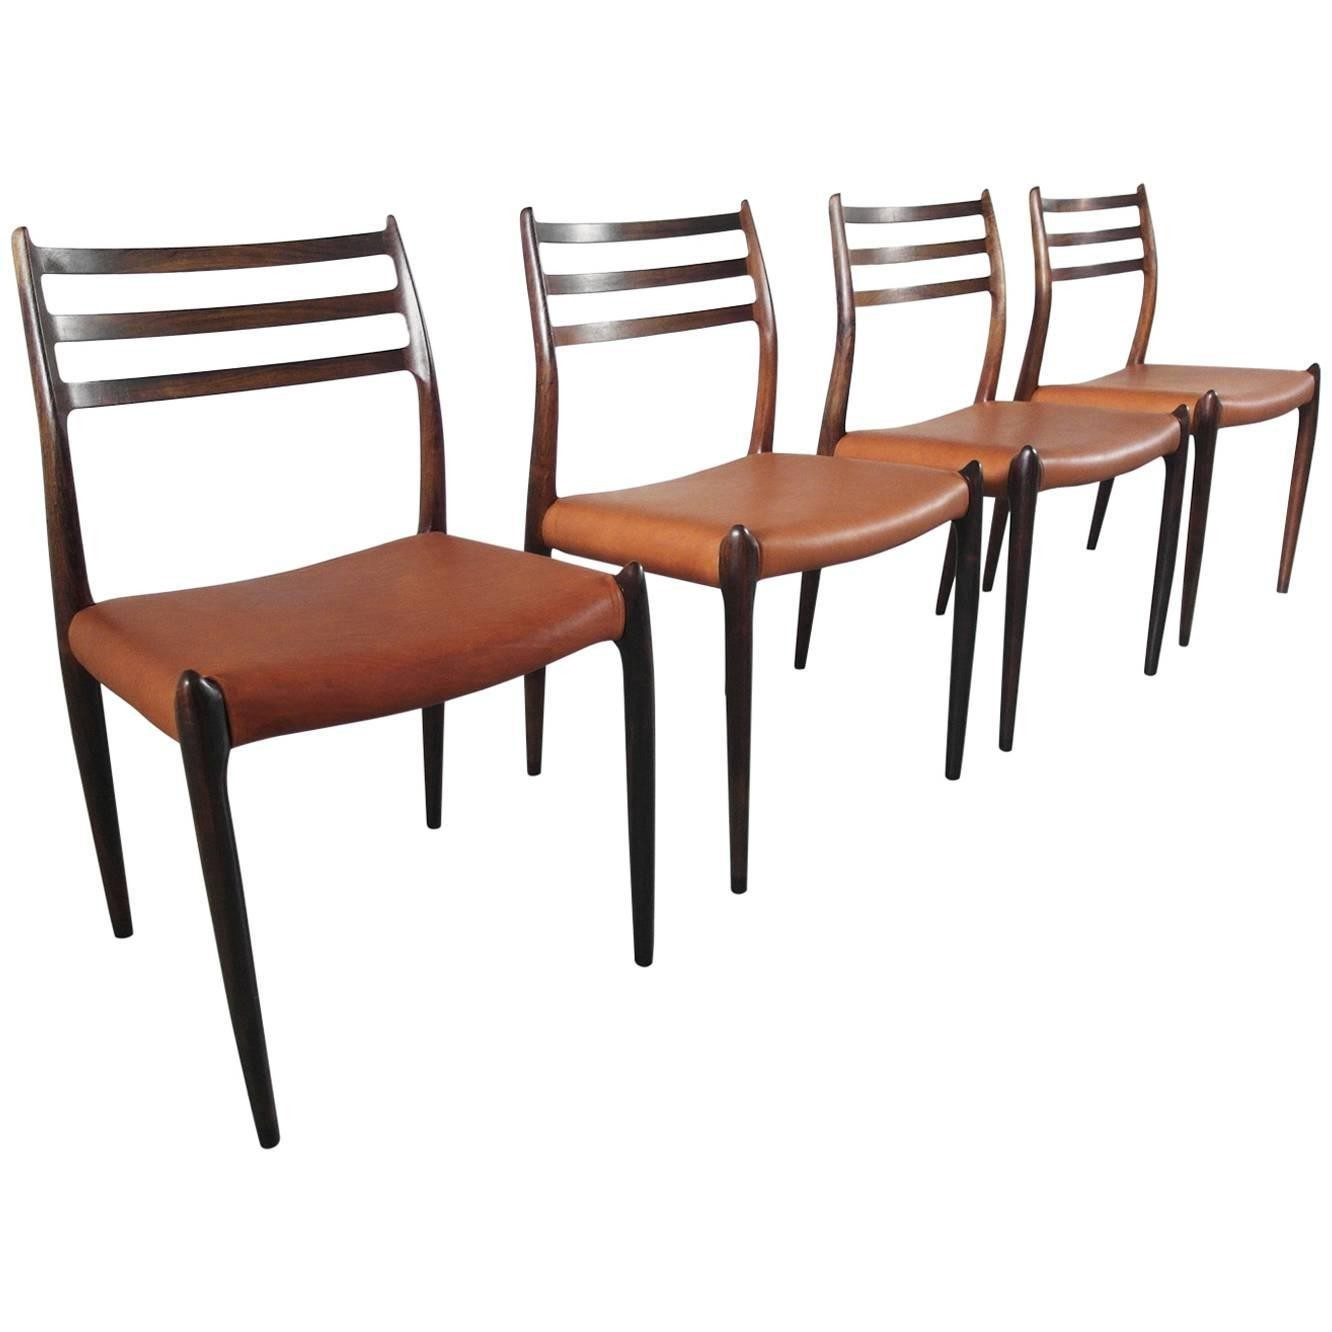 Set Of 4 J L M 248 Ller Quot Model 78 Quot Chairs In Rosewood And